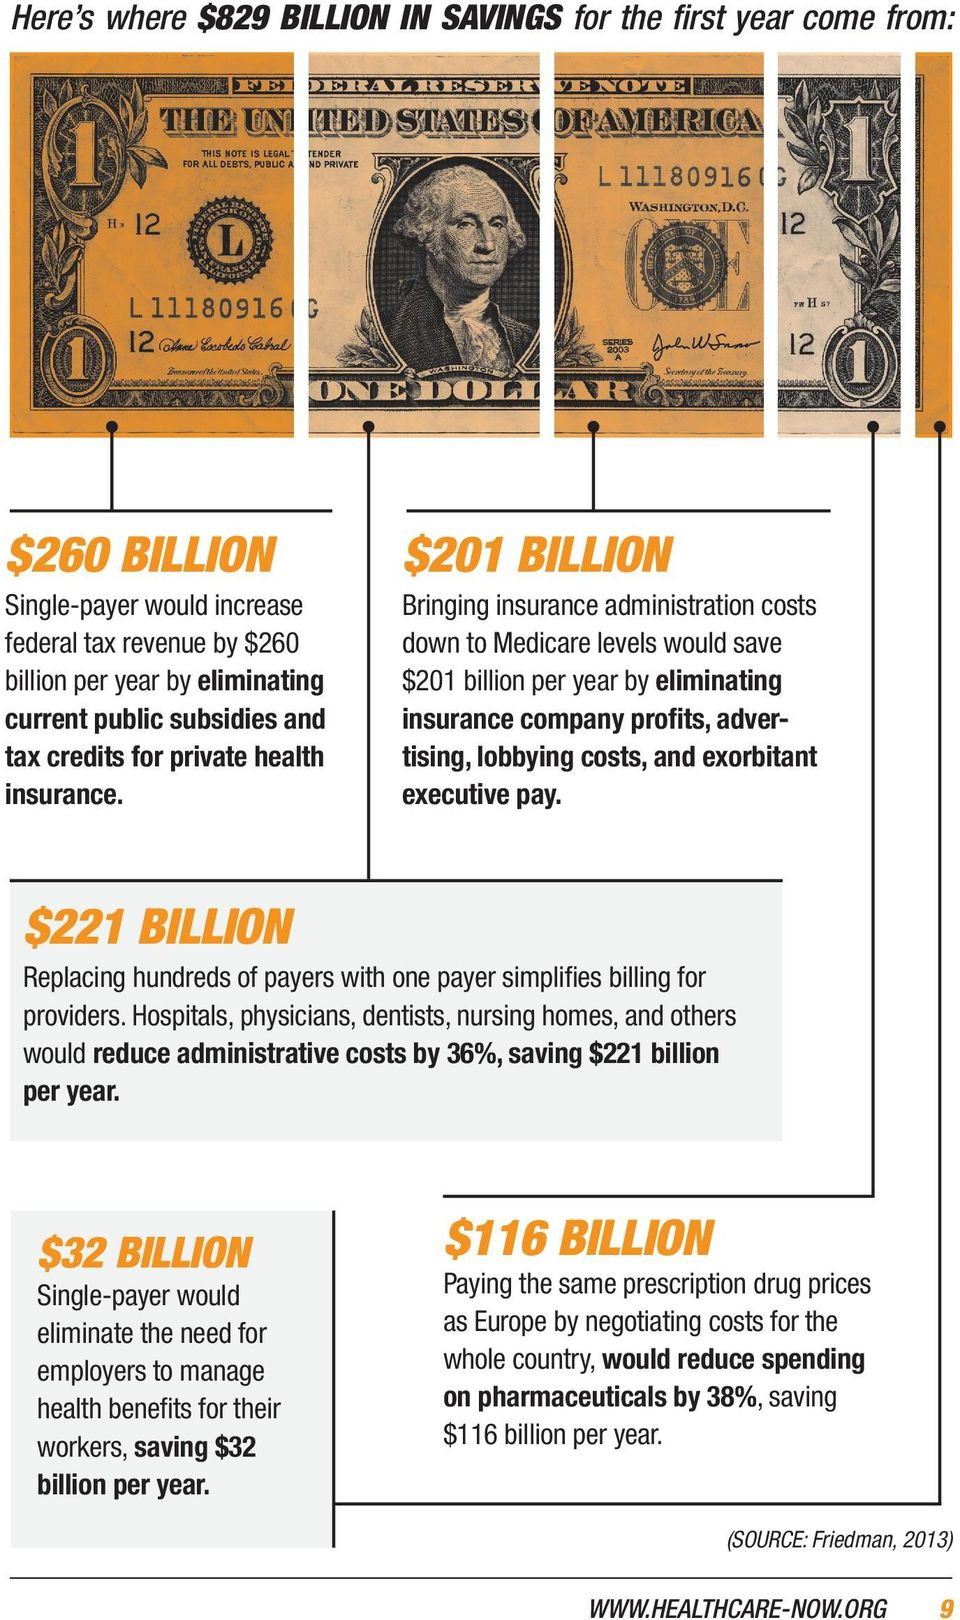 Bringing insurance administration costs down to Medicare levels would save $201 billion per year by eliminating insurance company profits, advertising, lobbying costs, and exorbitant executive pay.